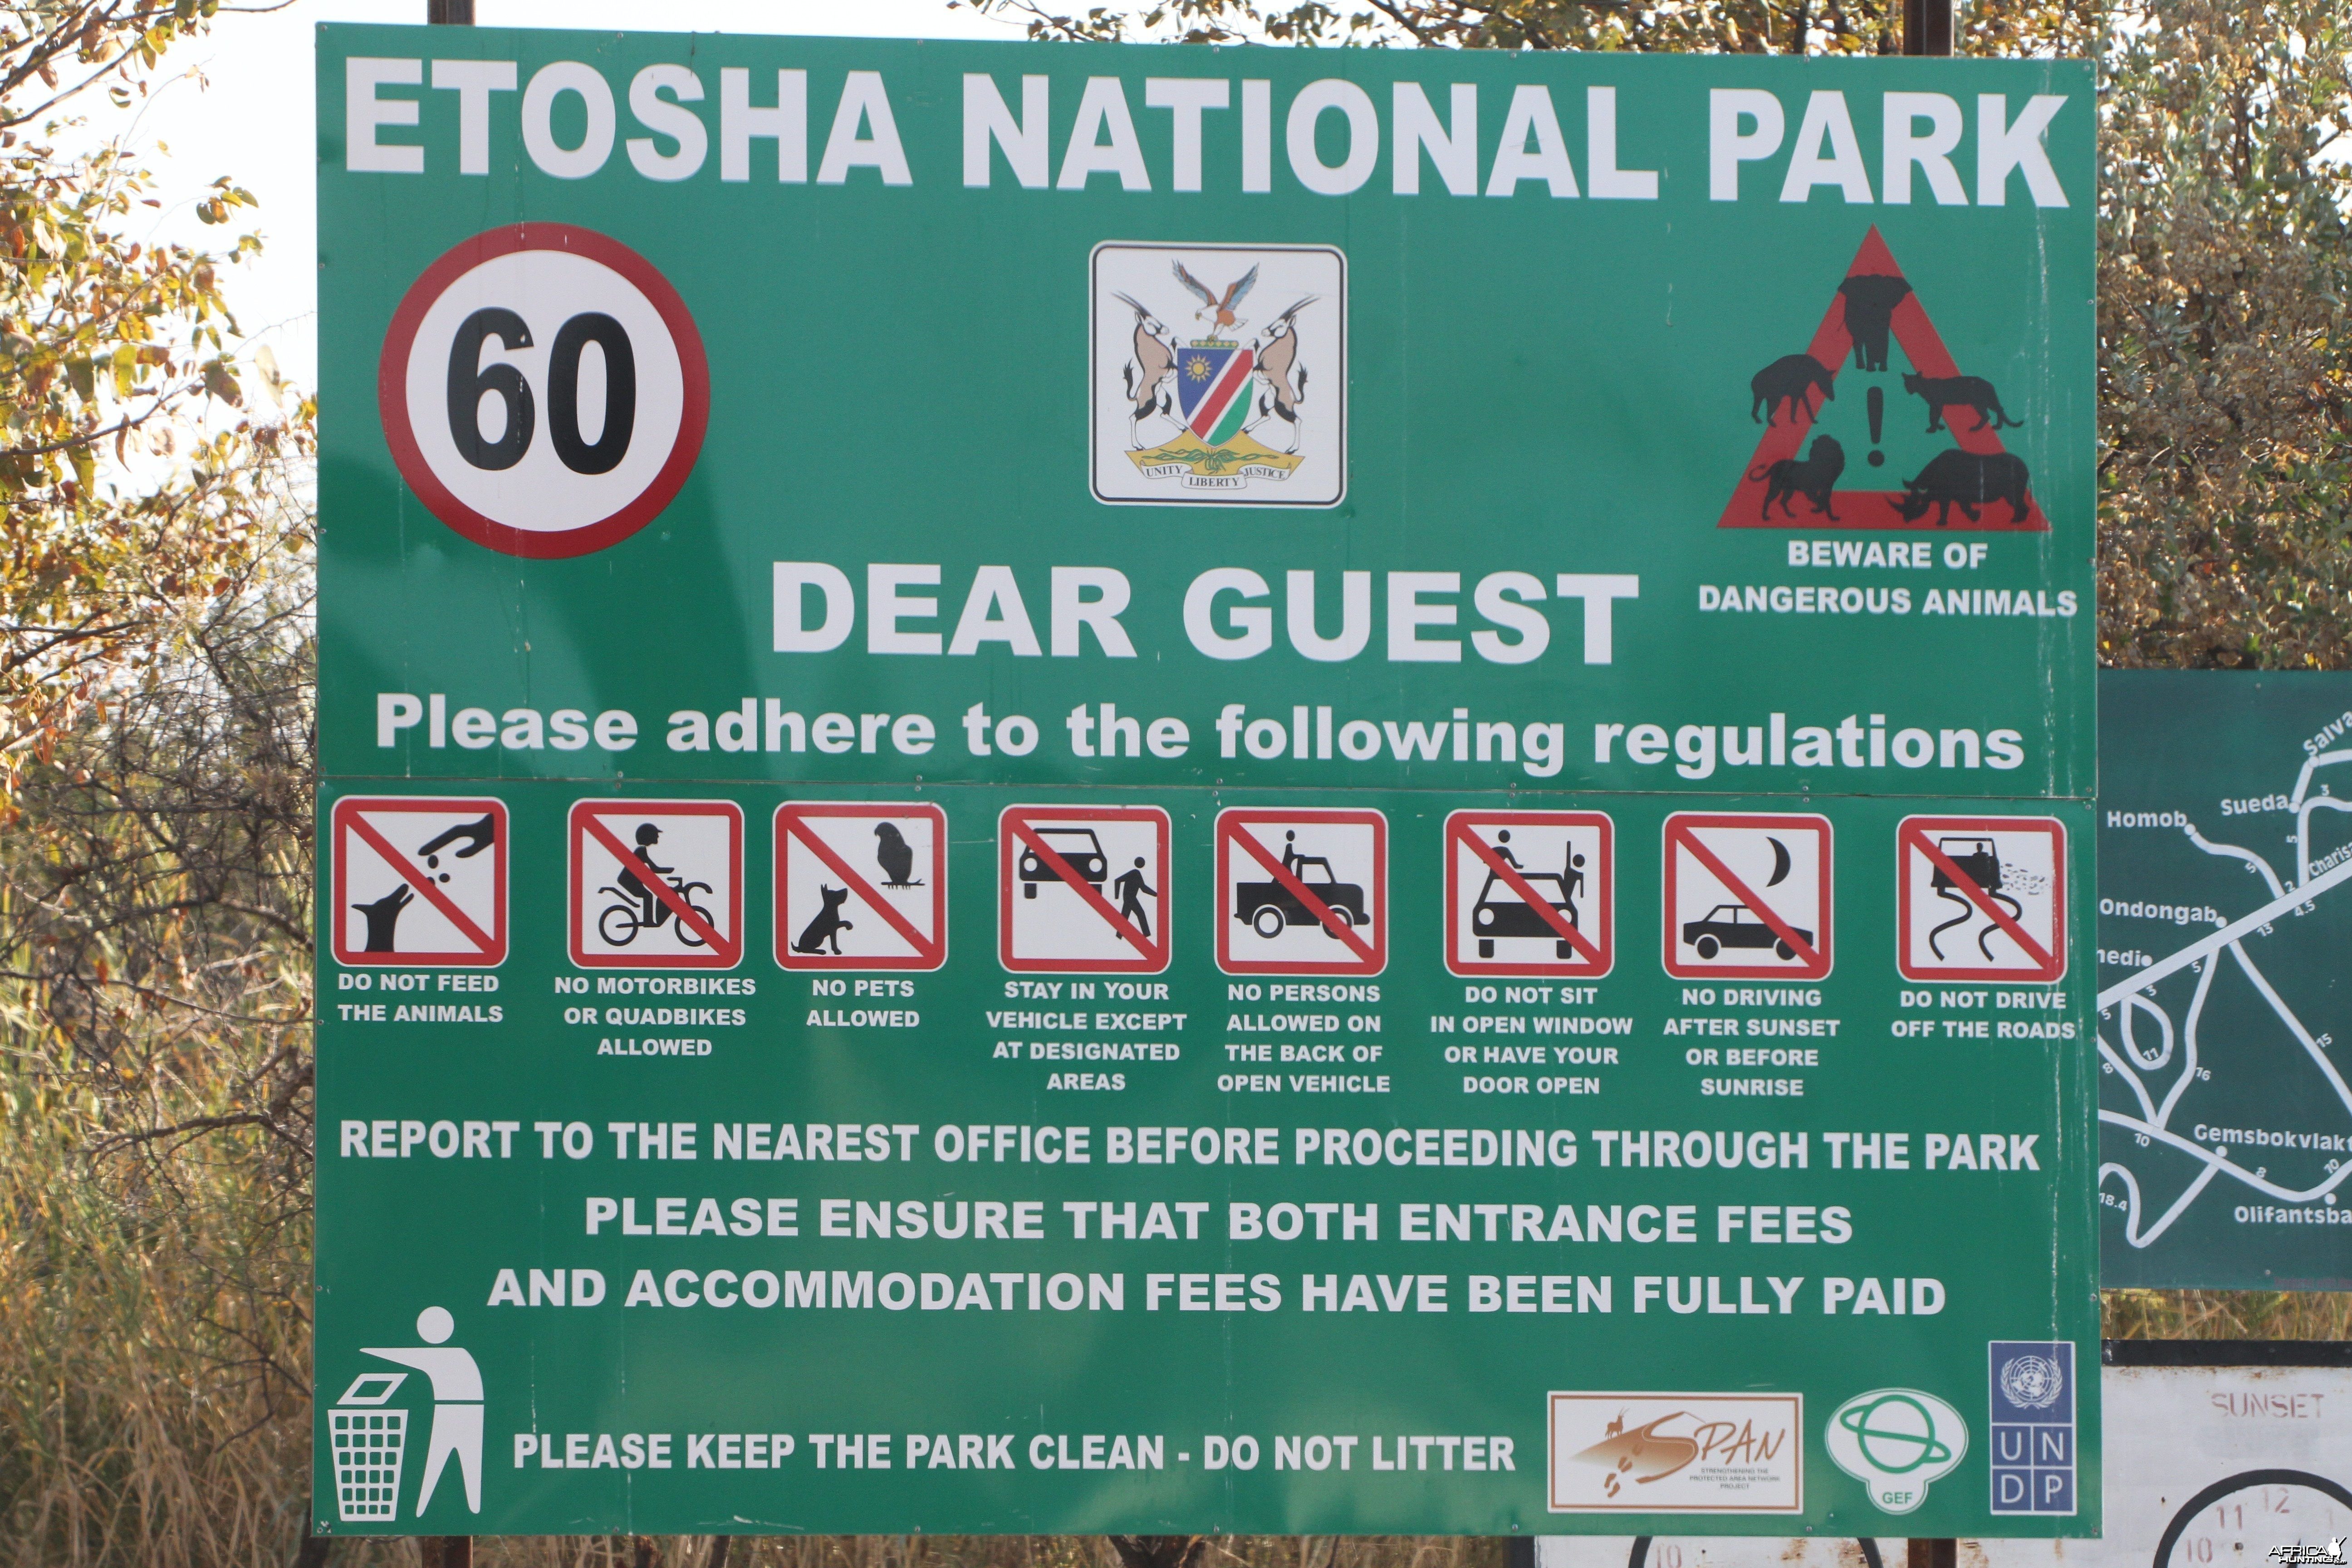 Sign at Etosha National Park